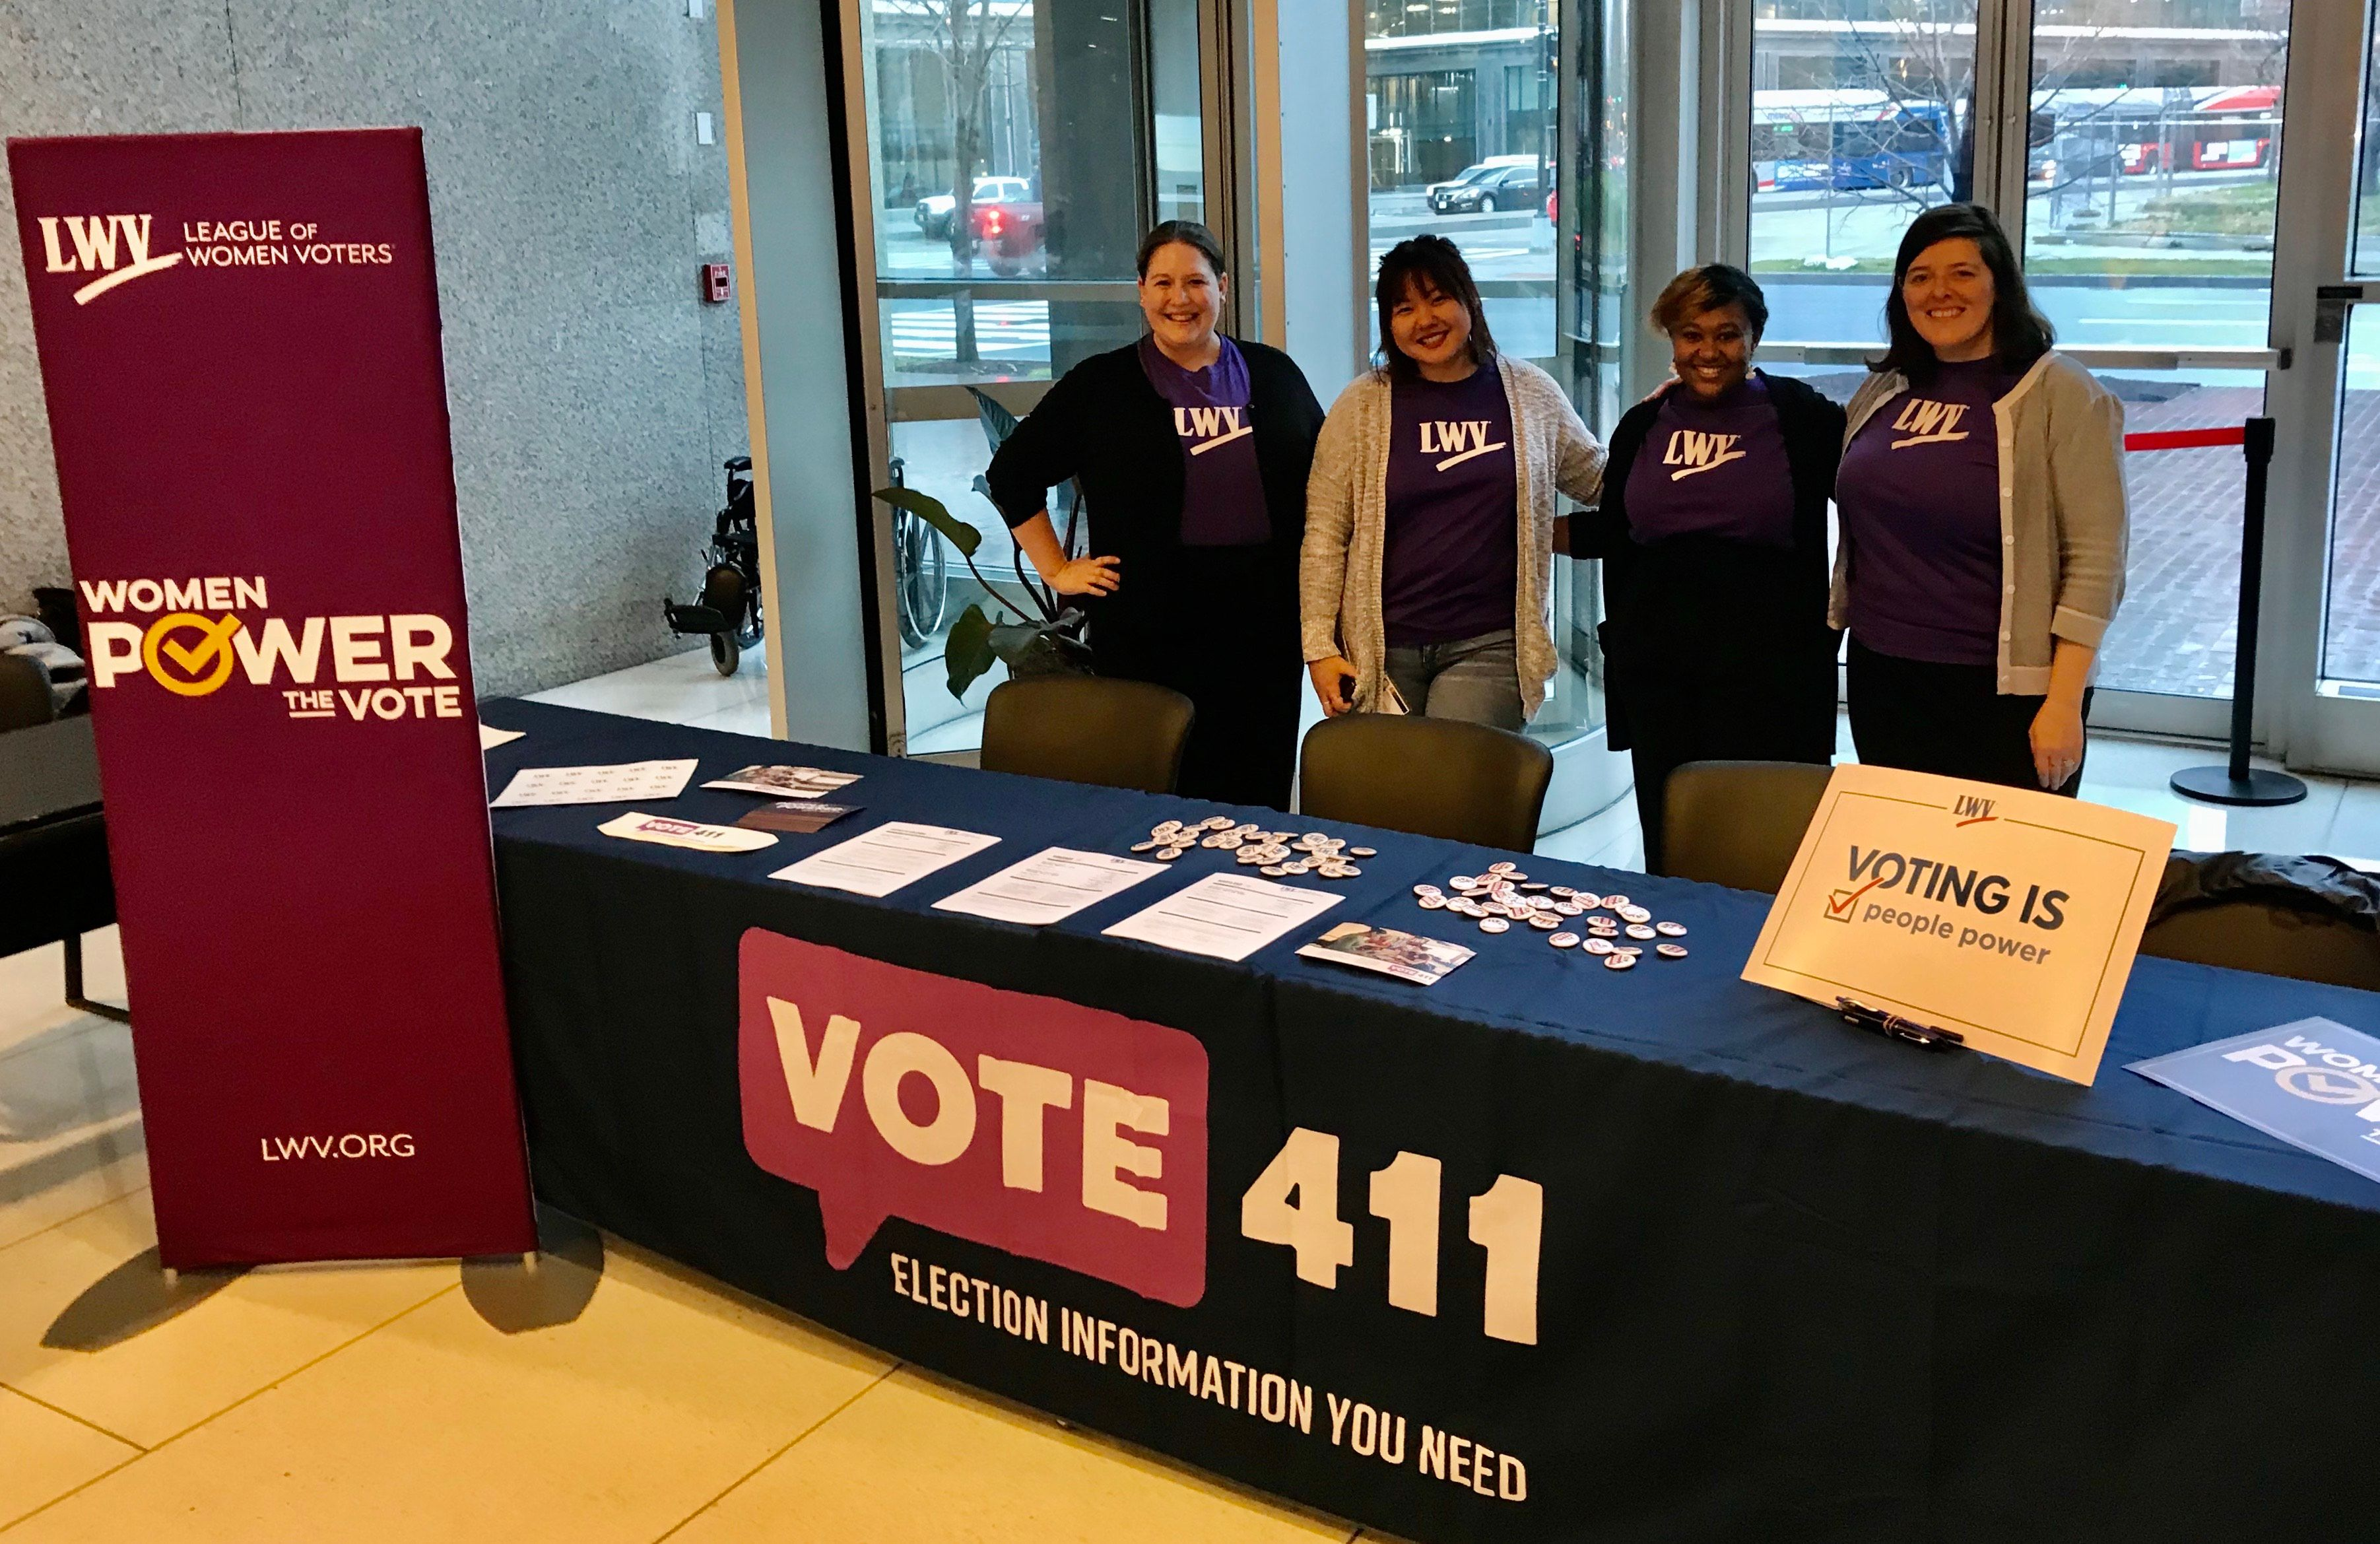 League staff at United State Citizen and Immigration Services giving voter information.